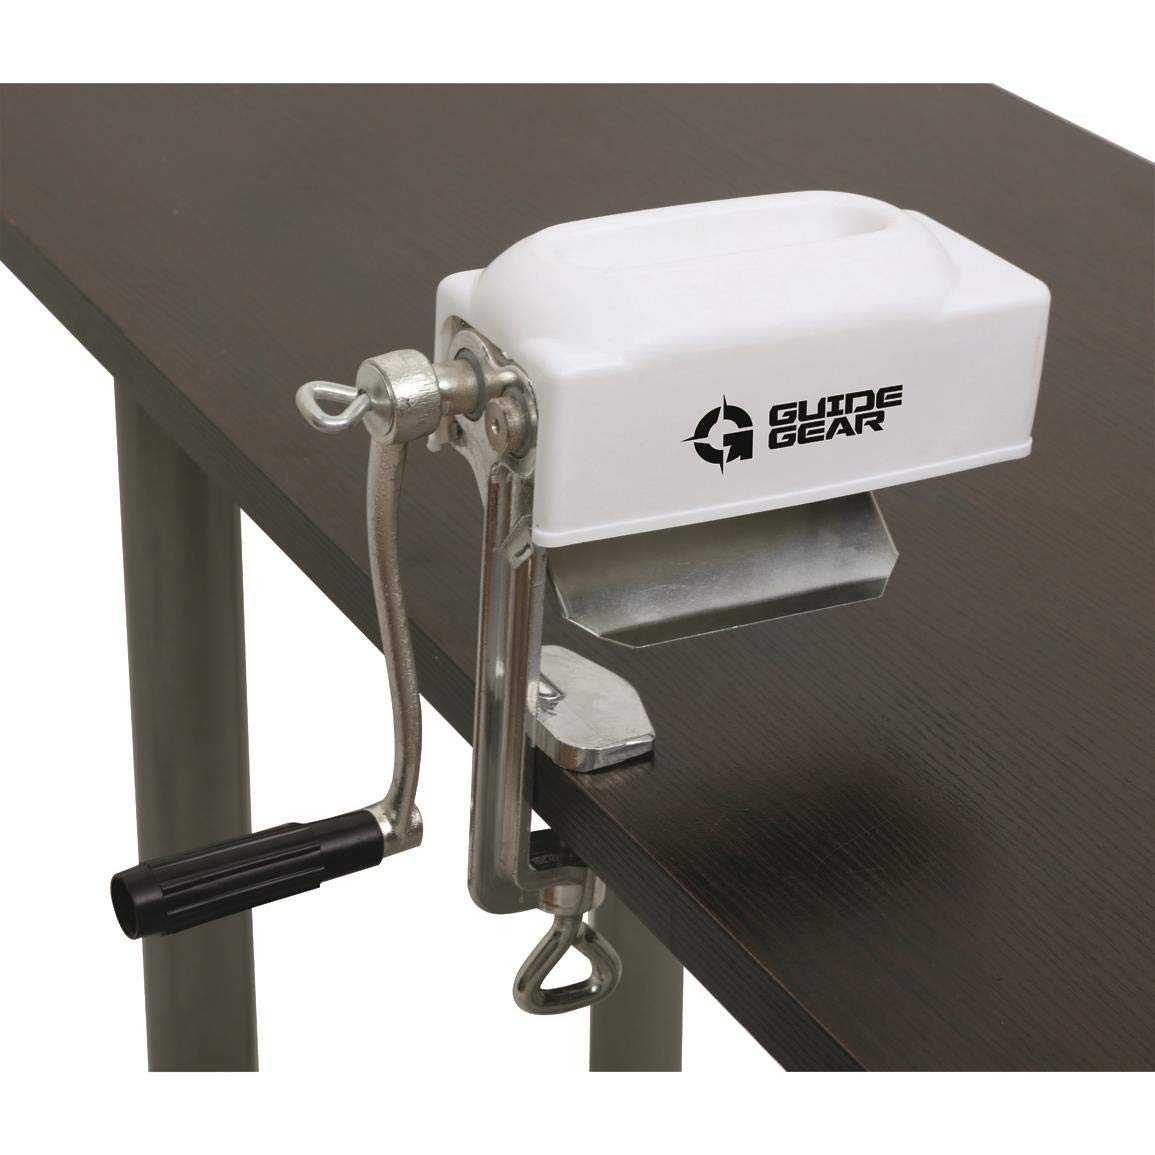 Guide Gear Meat Tenderizer and Cuber by Guide Gear